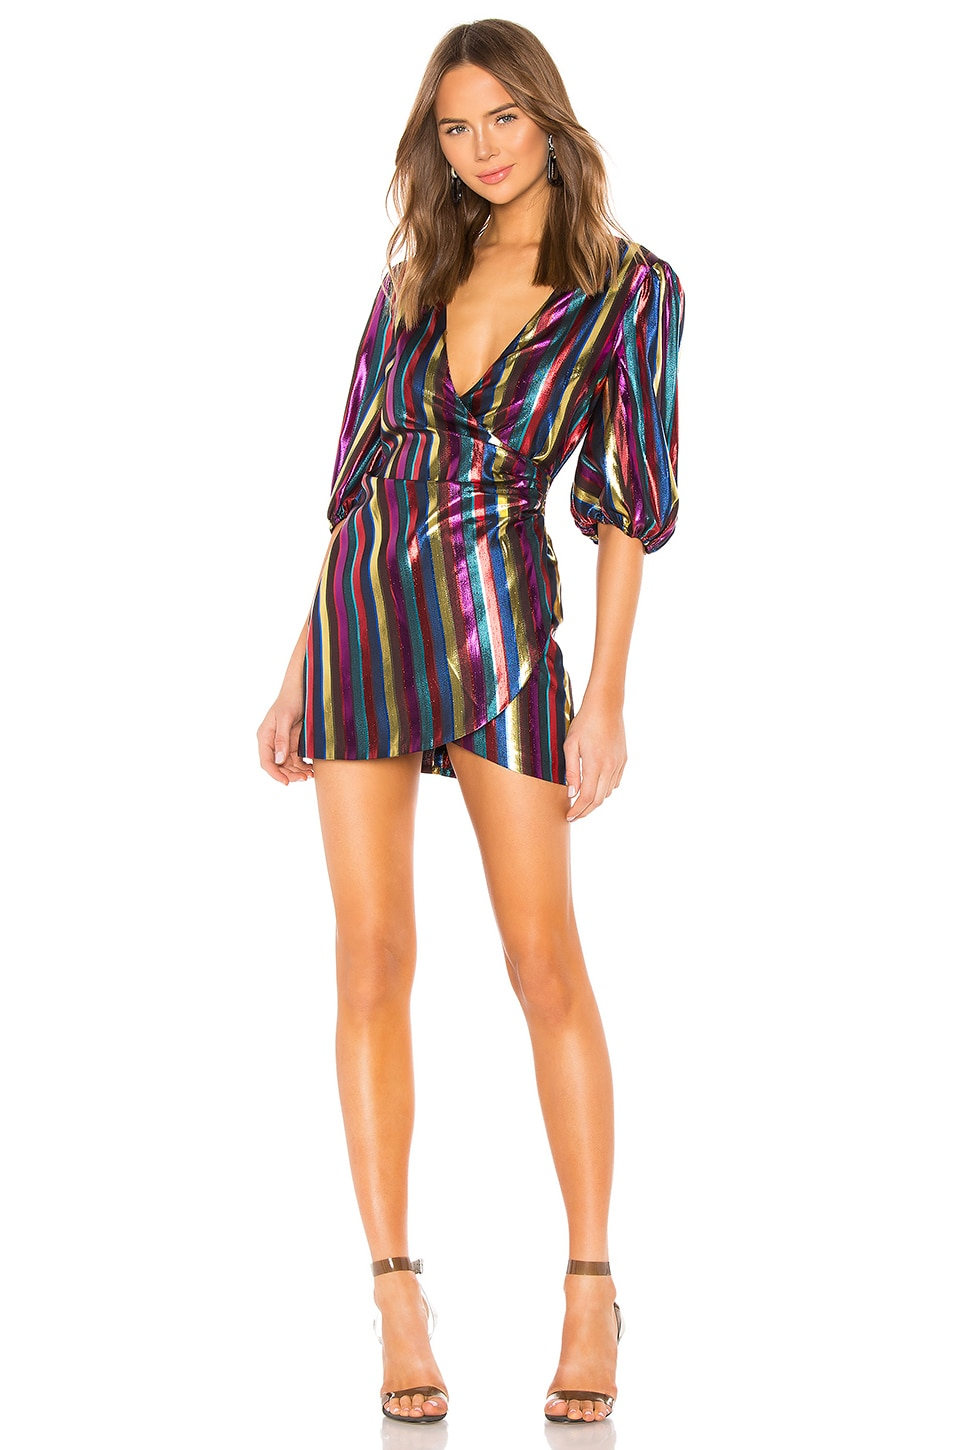 Lovers + Friends Frida Mini Dress in Rainbow